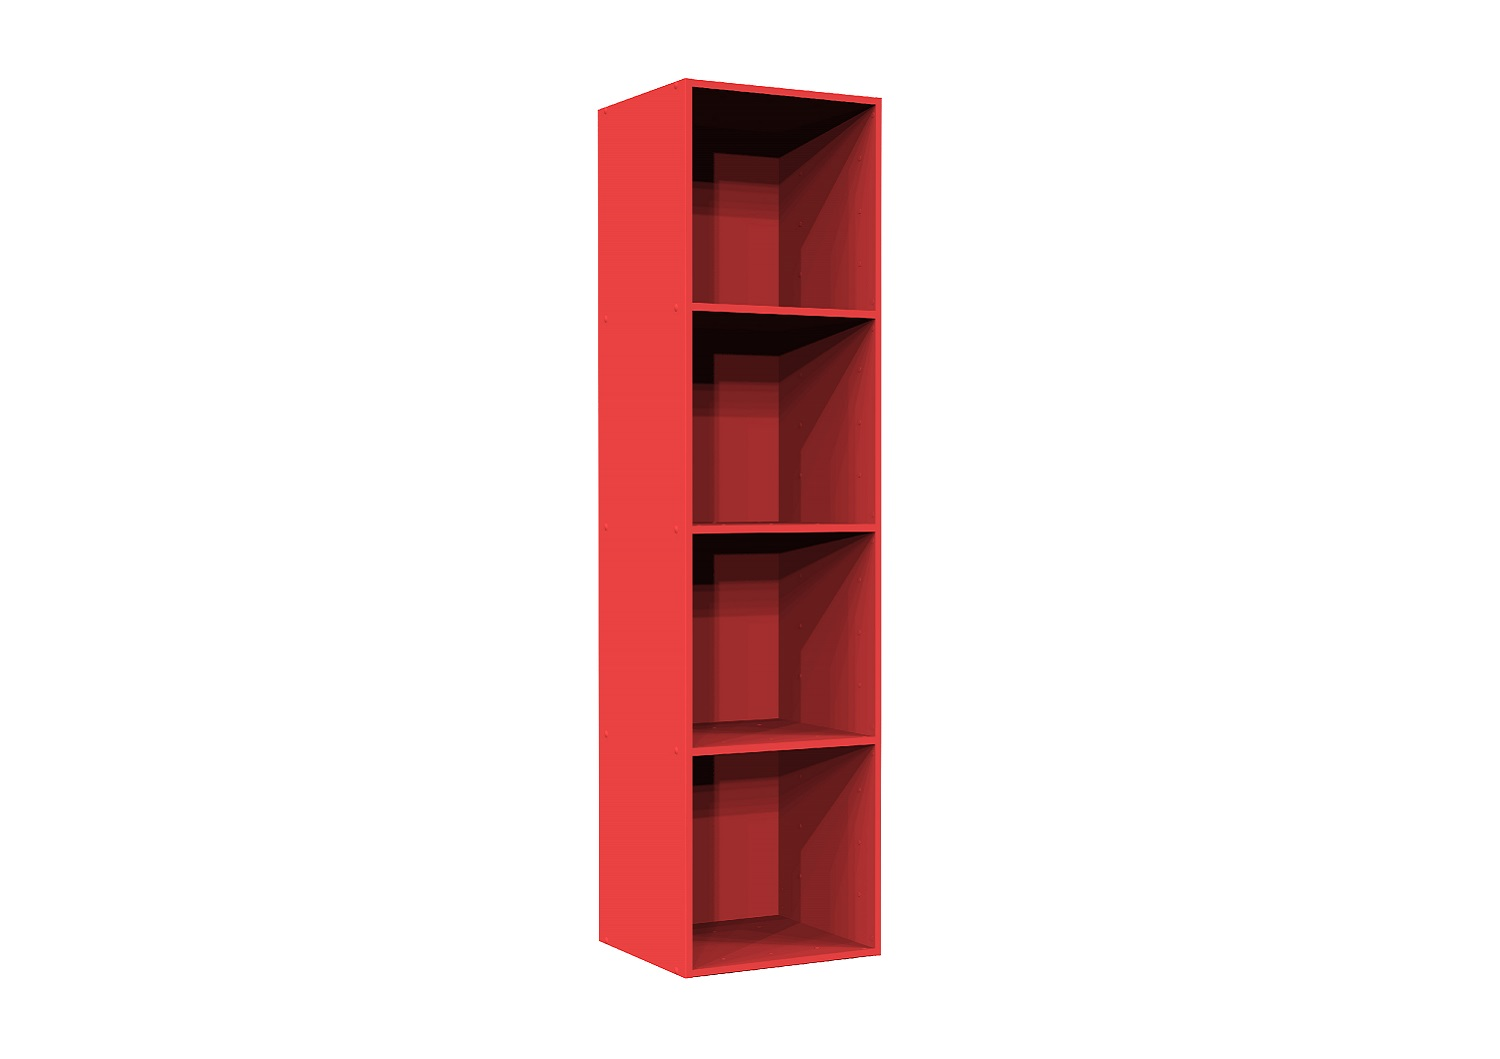 Bilrich Storage Furniture - Multi Kaz 4x1 Cube Red